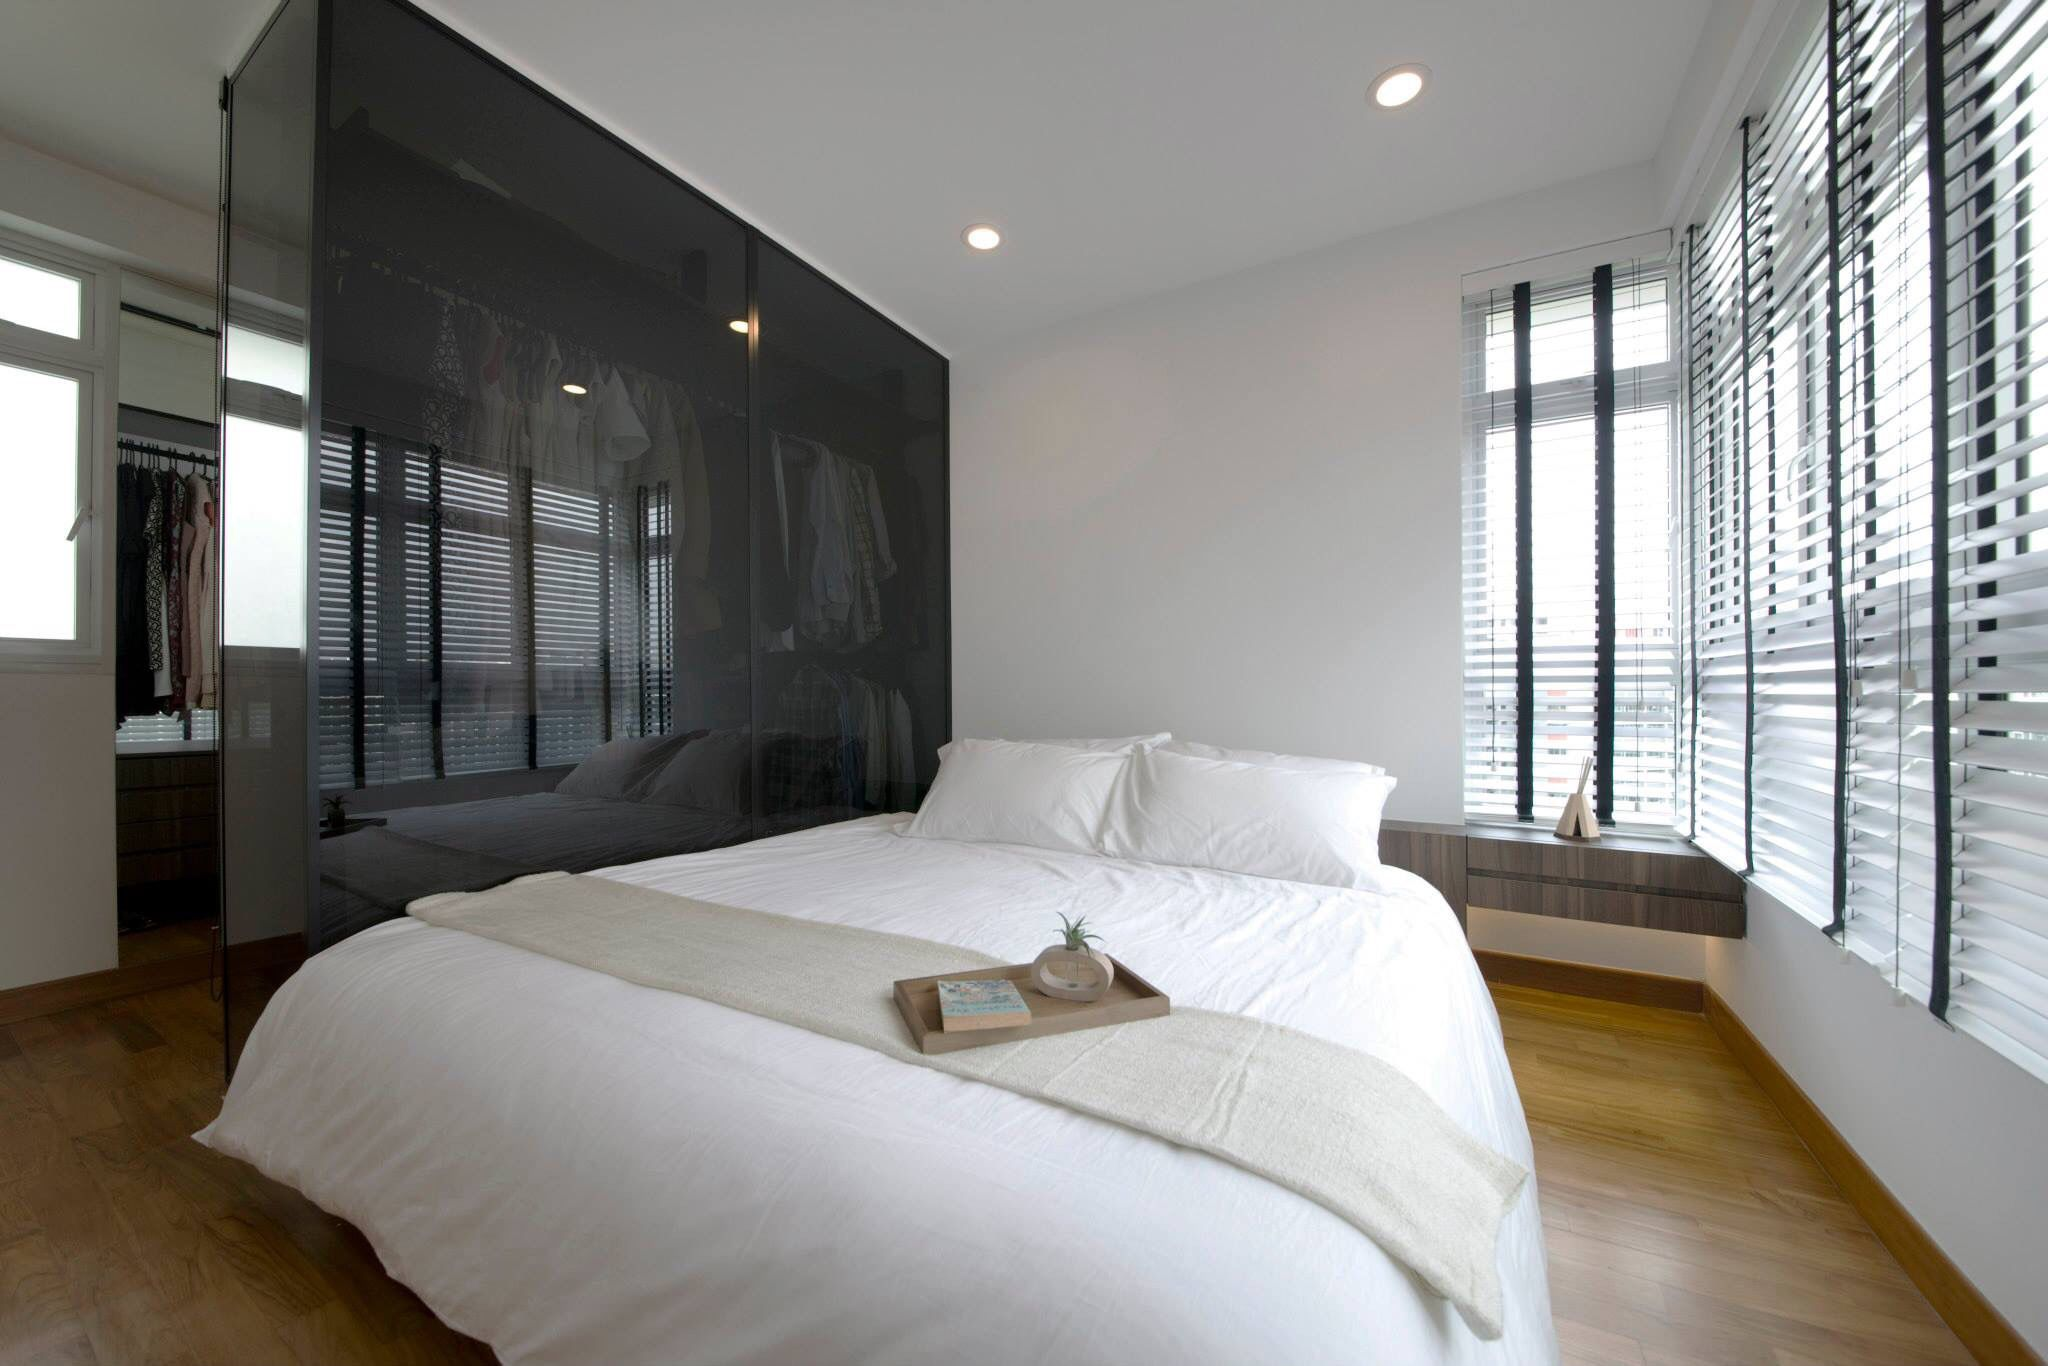 5 room hdb master bedroom design  Claudine Poh cdphy on Pinterest